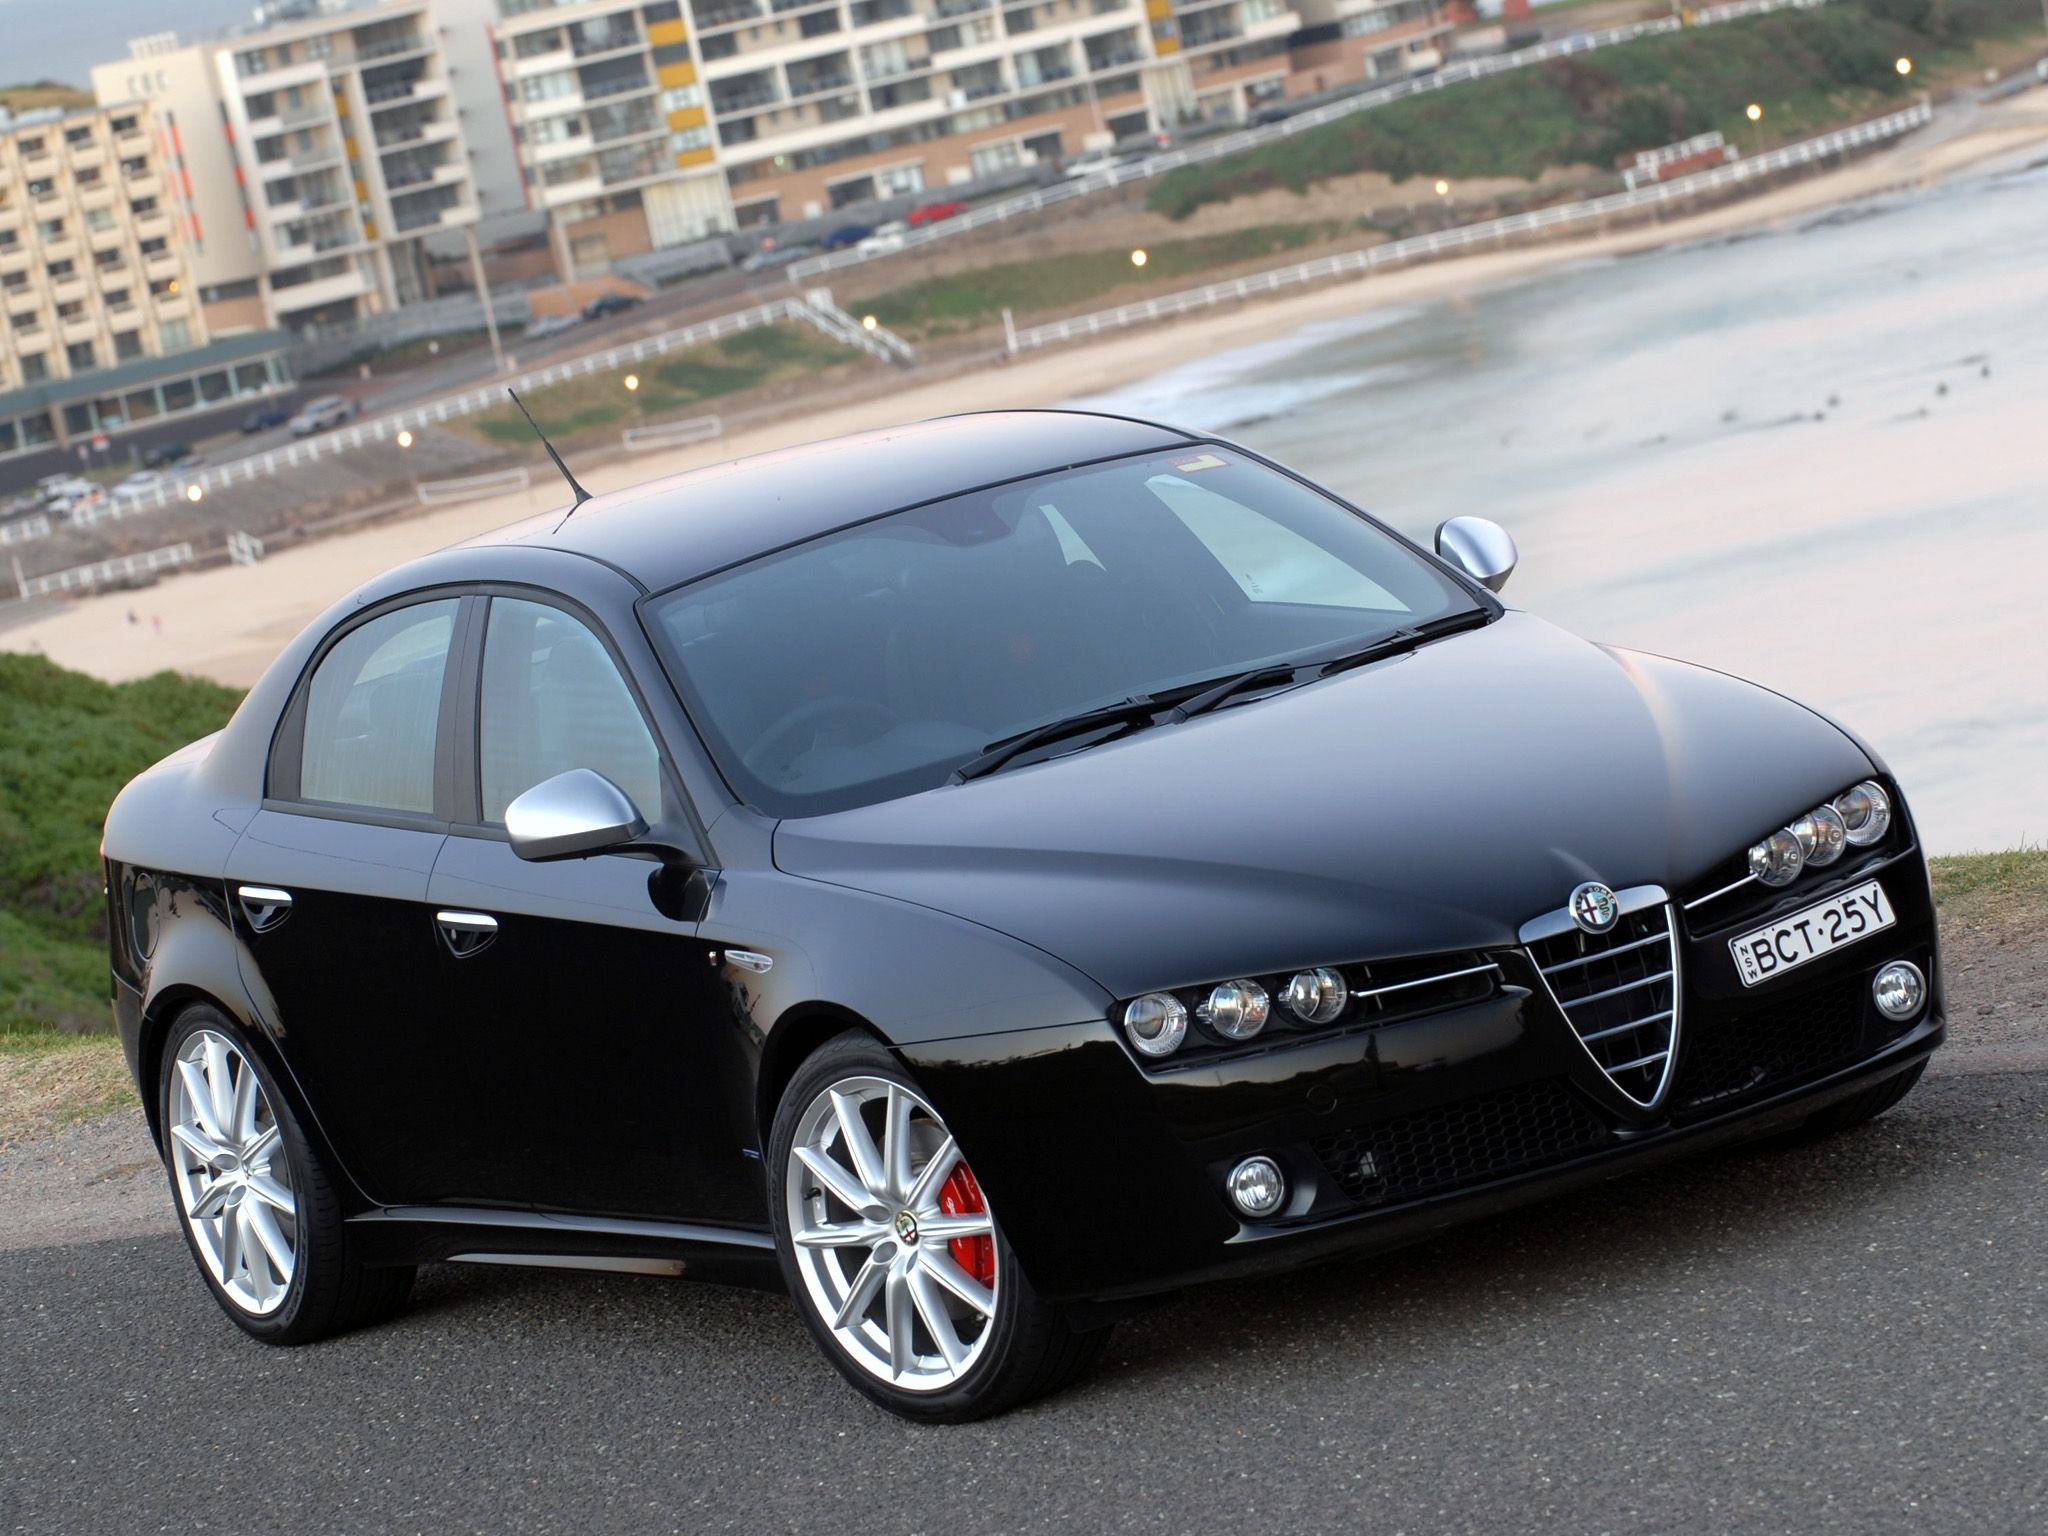 alfa romeo 159 google zoeken four wheels pinterest alfa romeo 159 cars and alfa 159. Black Bedroom Furniture Sets. Home Design Ideas